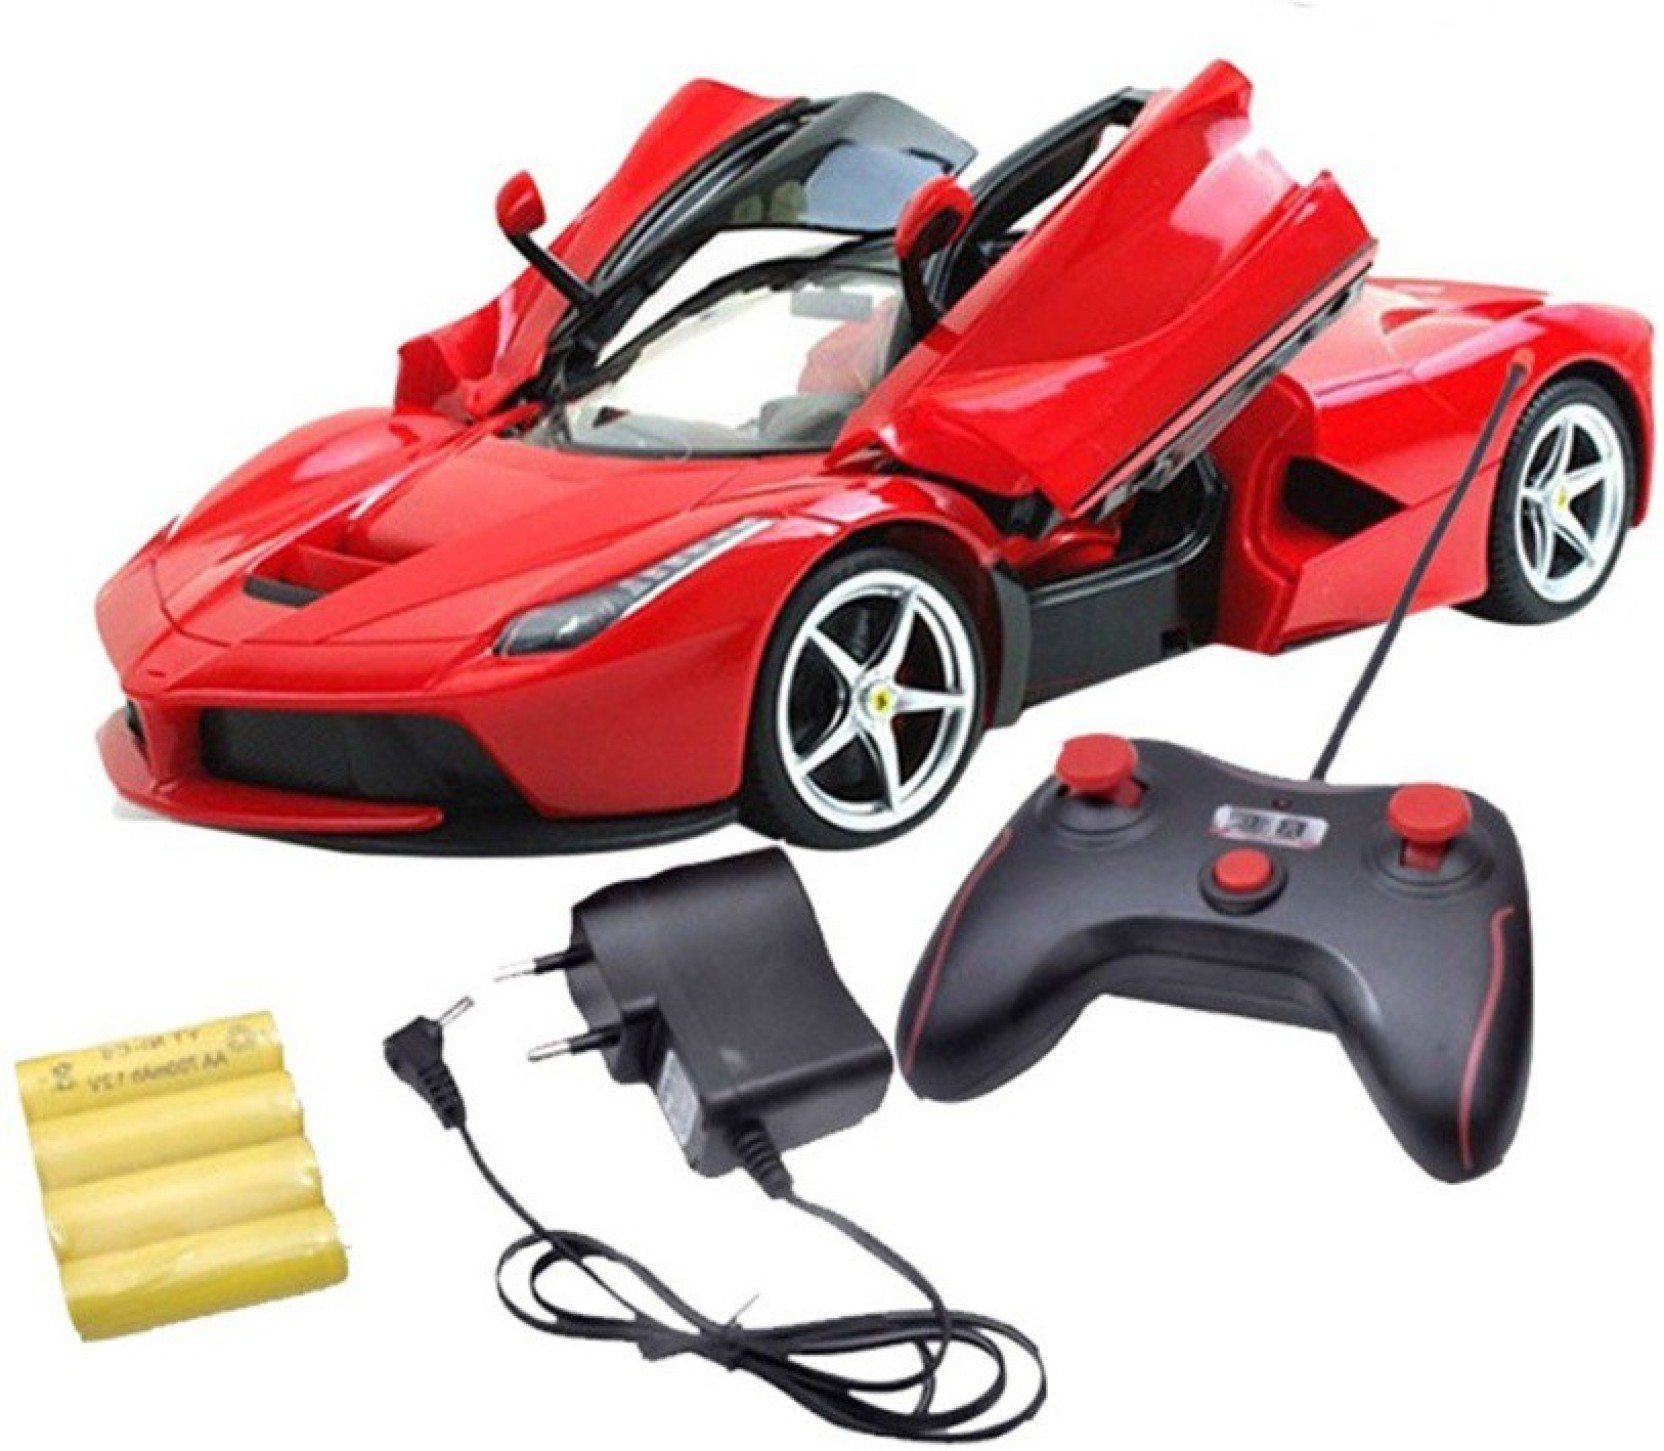 A R ENTERPRISES RED FARRARI REMOTE CONTROL CAR CHARGEABLE ...